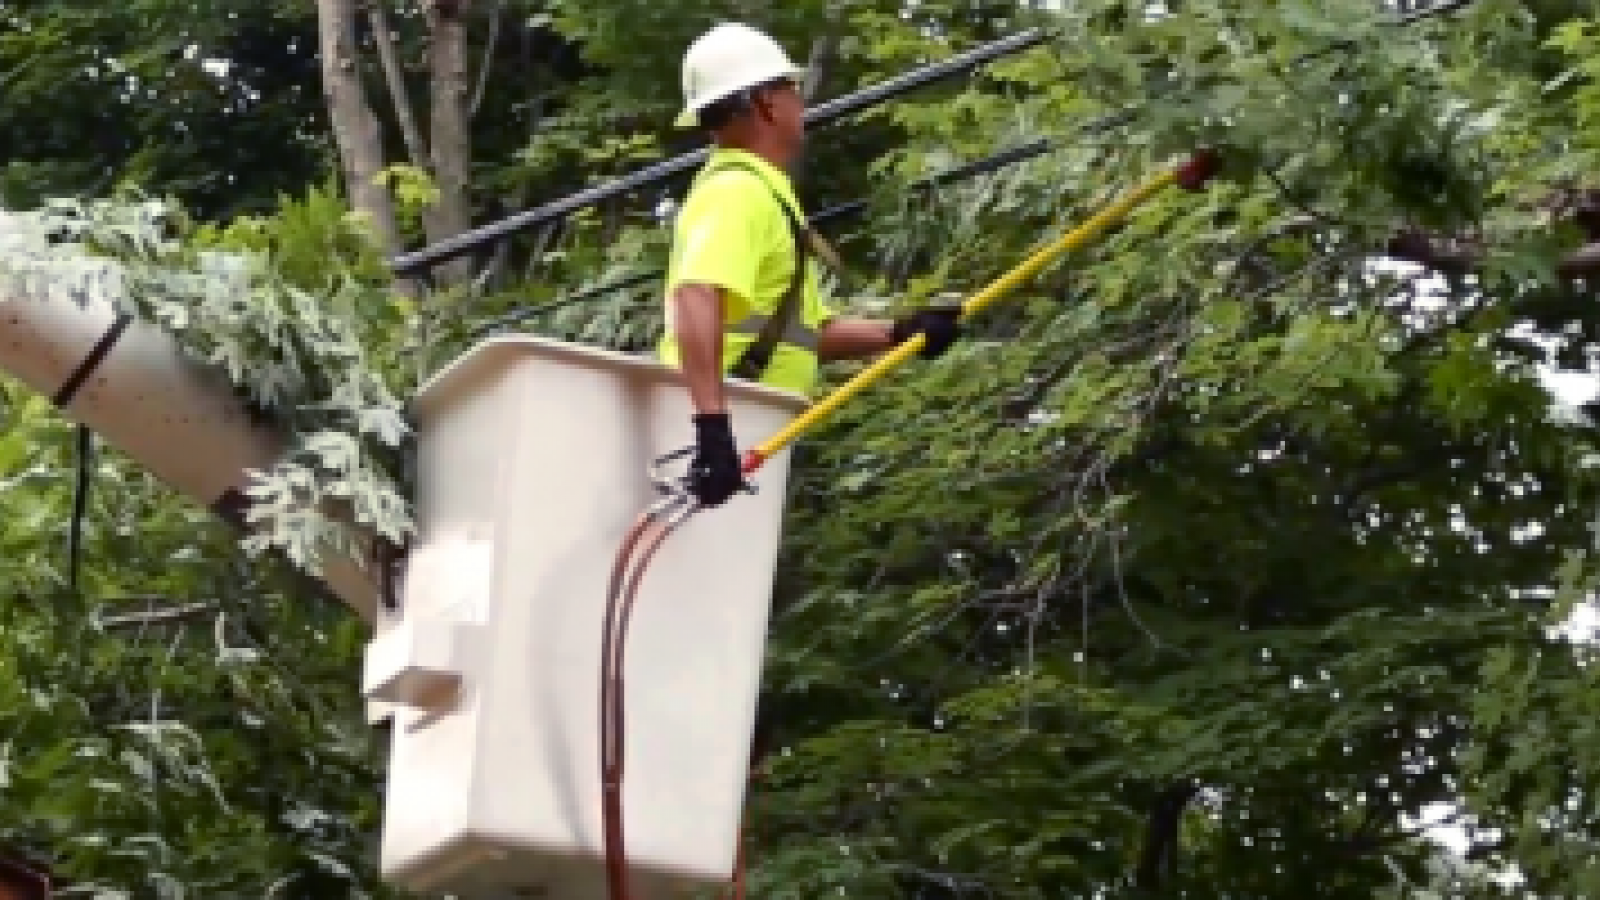 man in bucket truck removing limbs from a tree near power lines